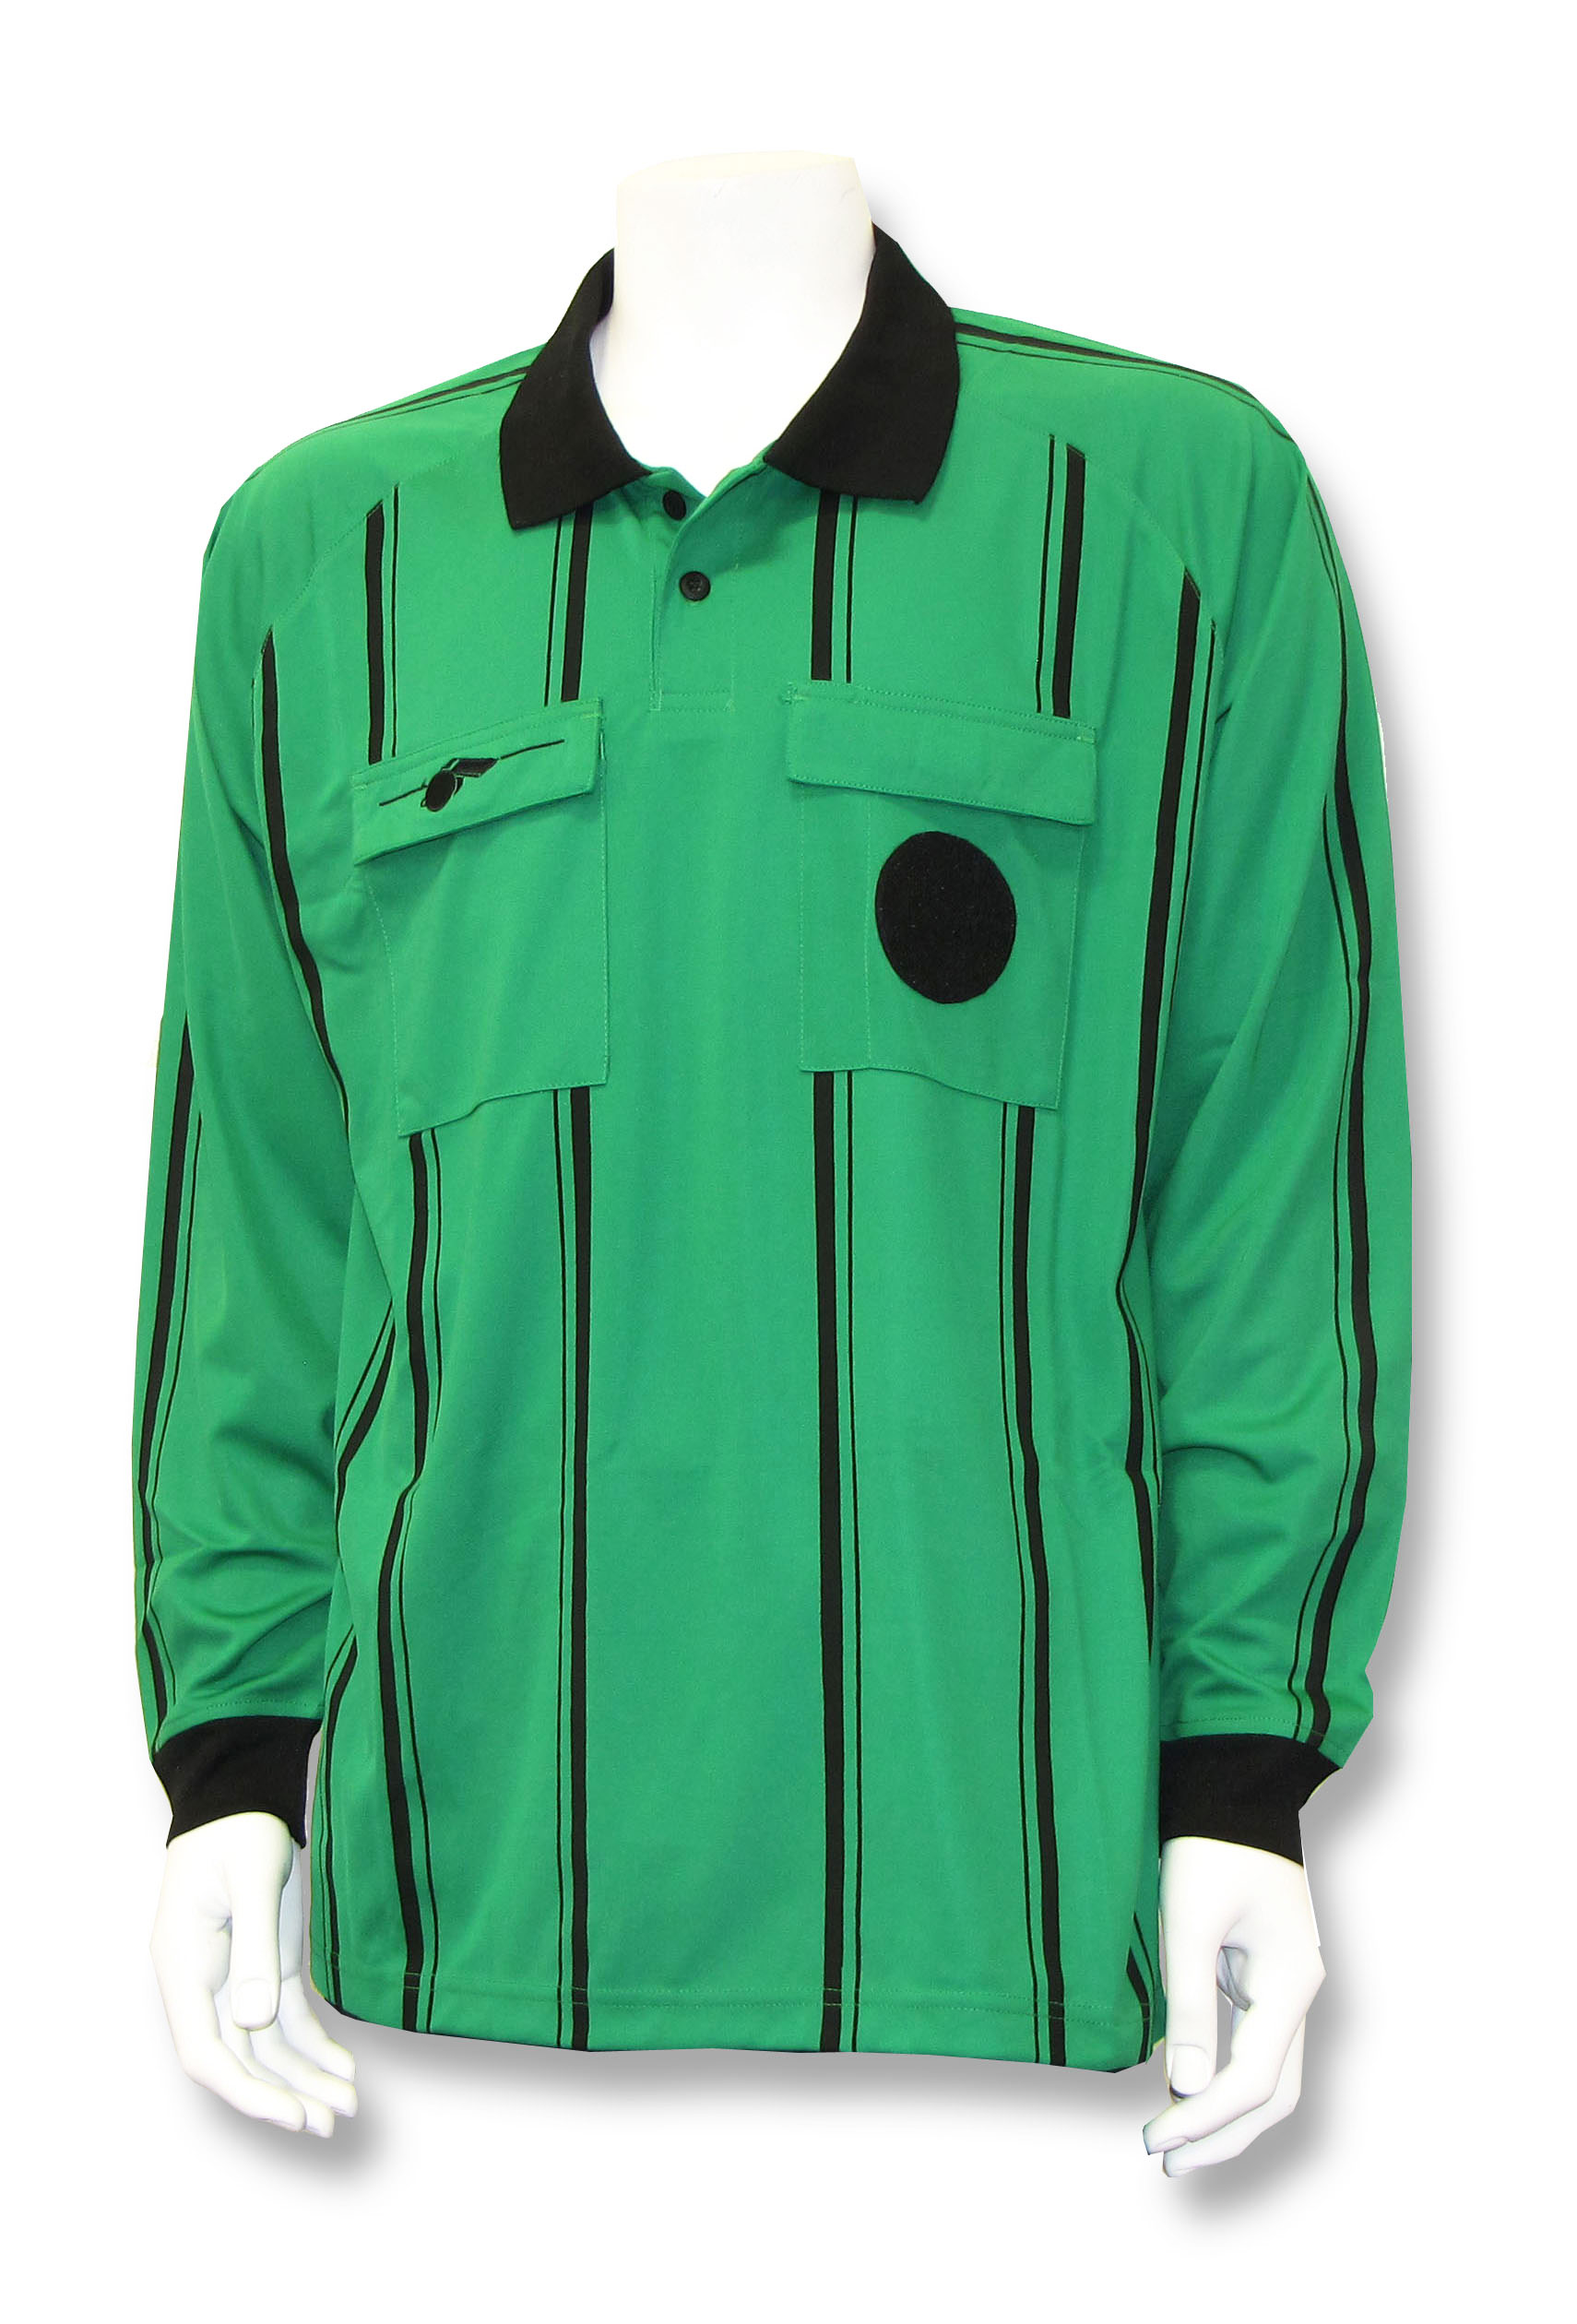 Soccer referee long-sleeve jersey in green by Whistleline